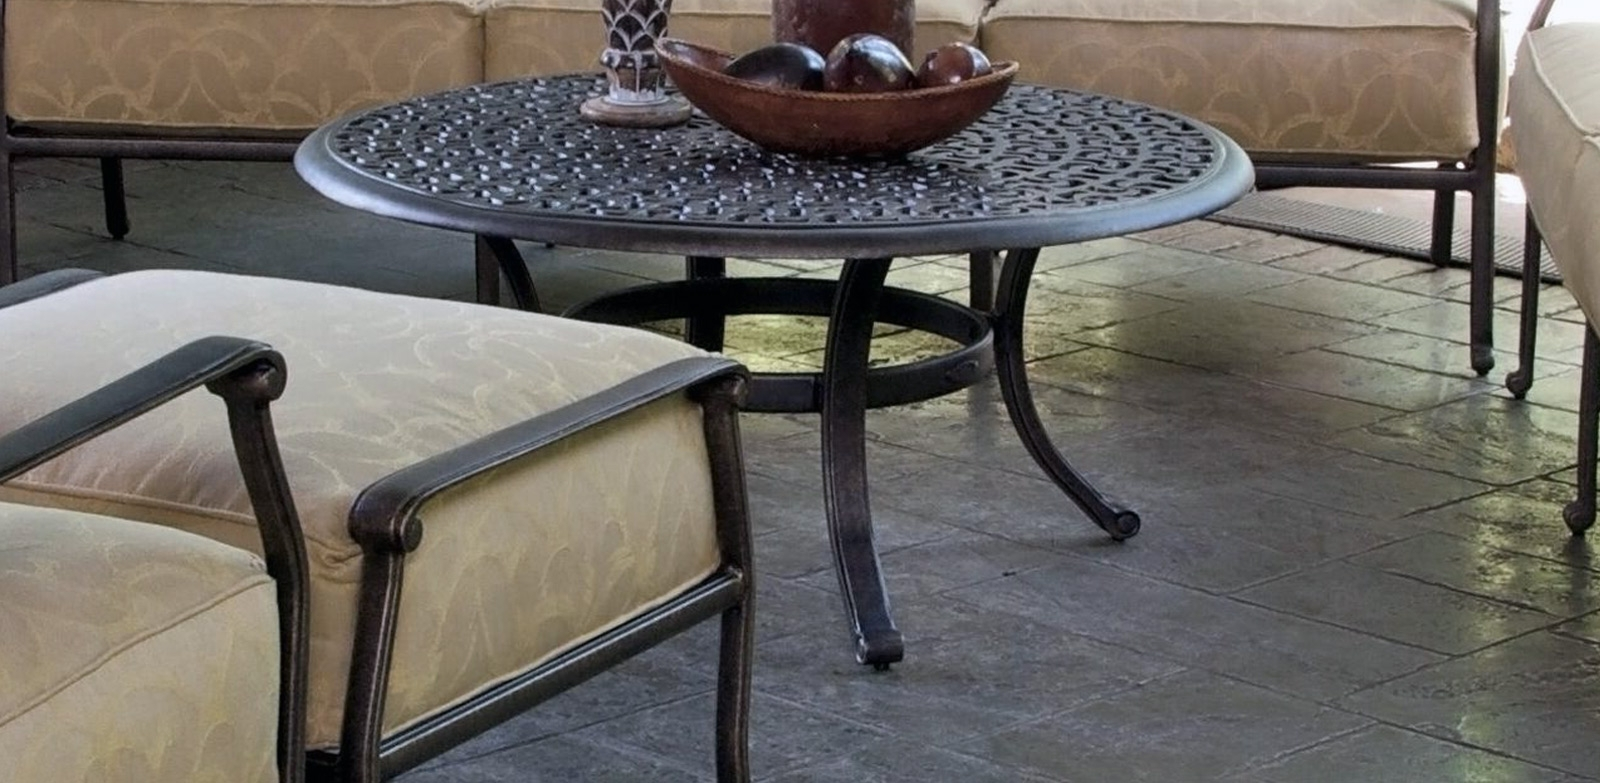 Sienna Tables – Castelle Luxury Outdoor Furniture Intended For Well Liked Outdoor Sienna Dining Tables (View 3 of 25)